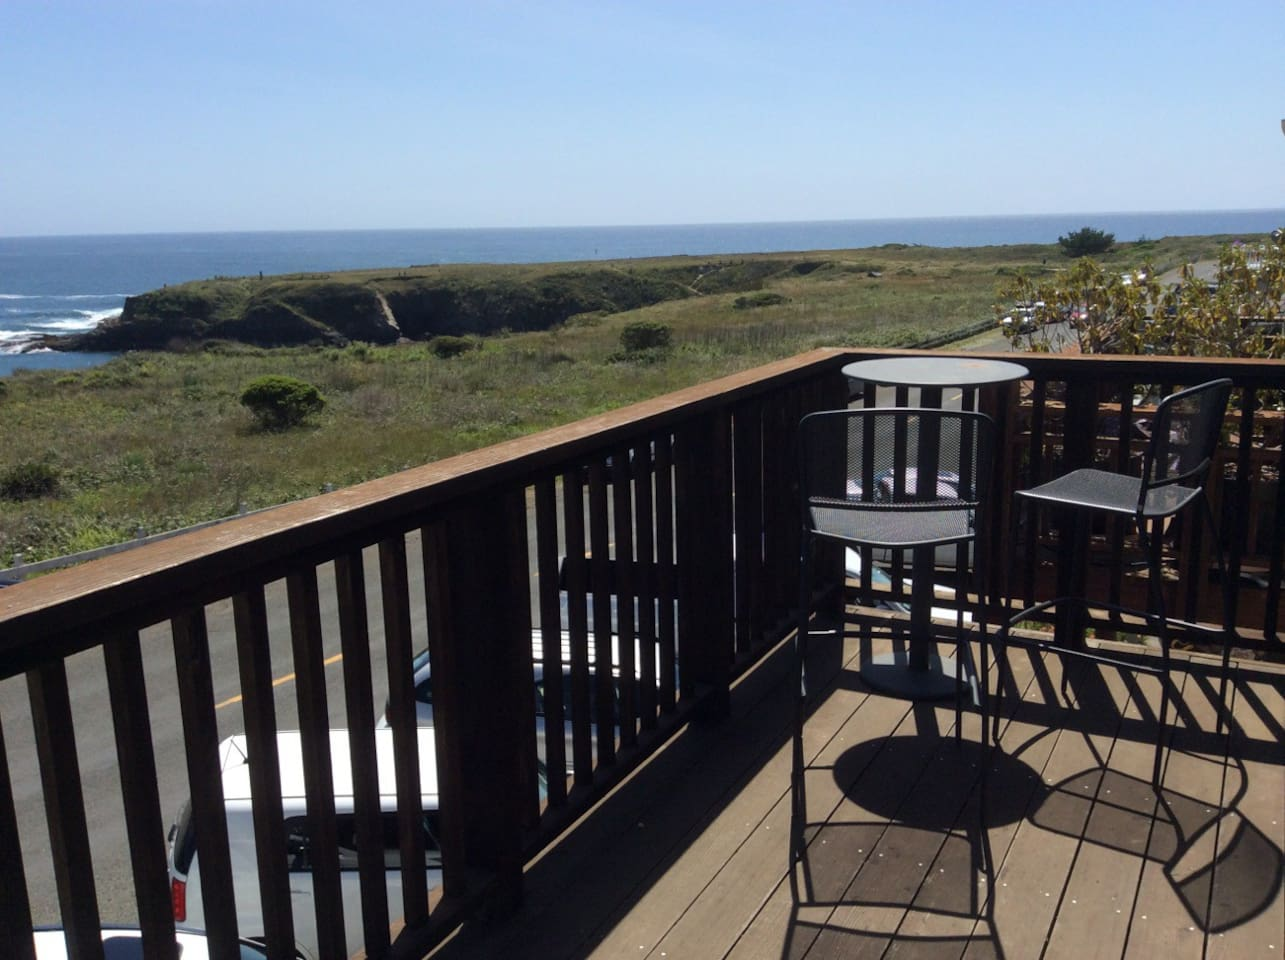 Epic balcony has a sweeping, unobstructed 180 degree ocean view. Enjoy a stunning vista including Mendocino Headlands State Park, Mendocino Bay, the Pacific Ocean, historic Main Street Mendocino and you!